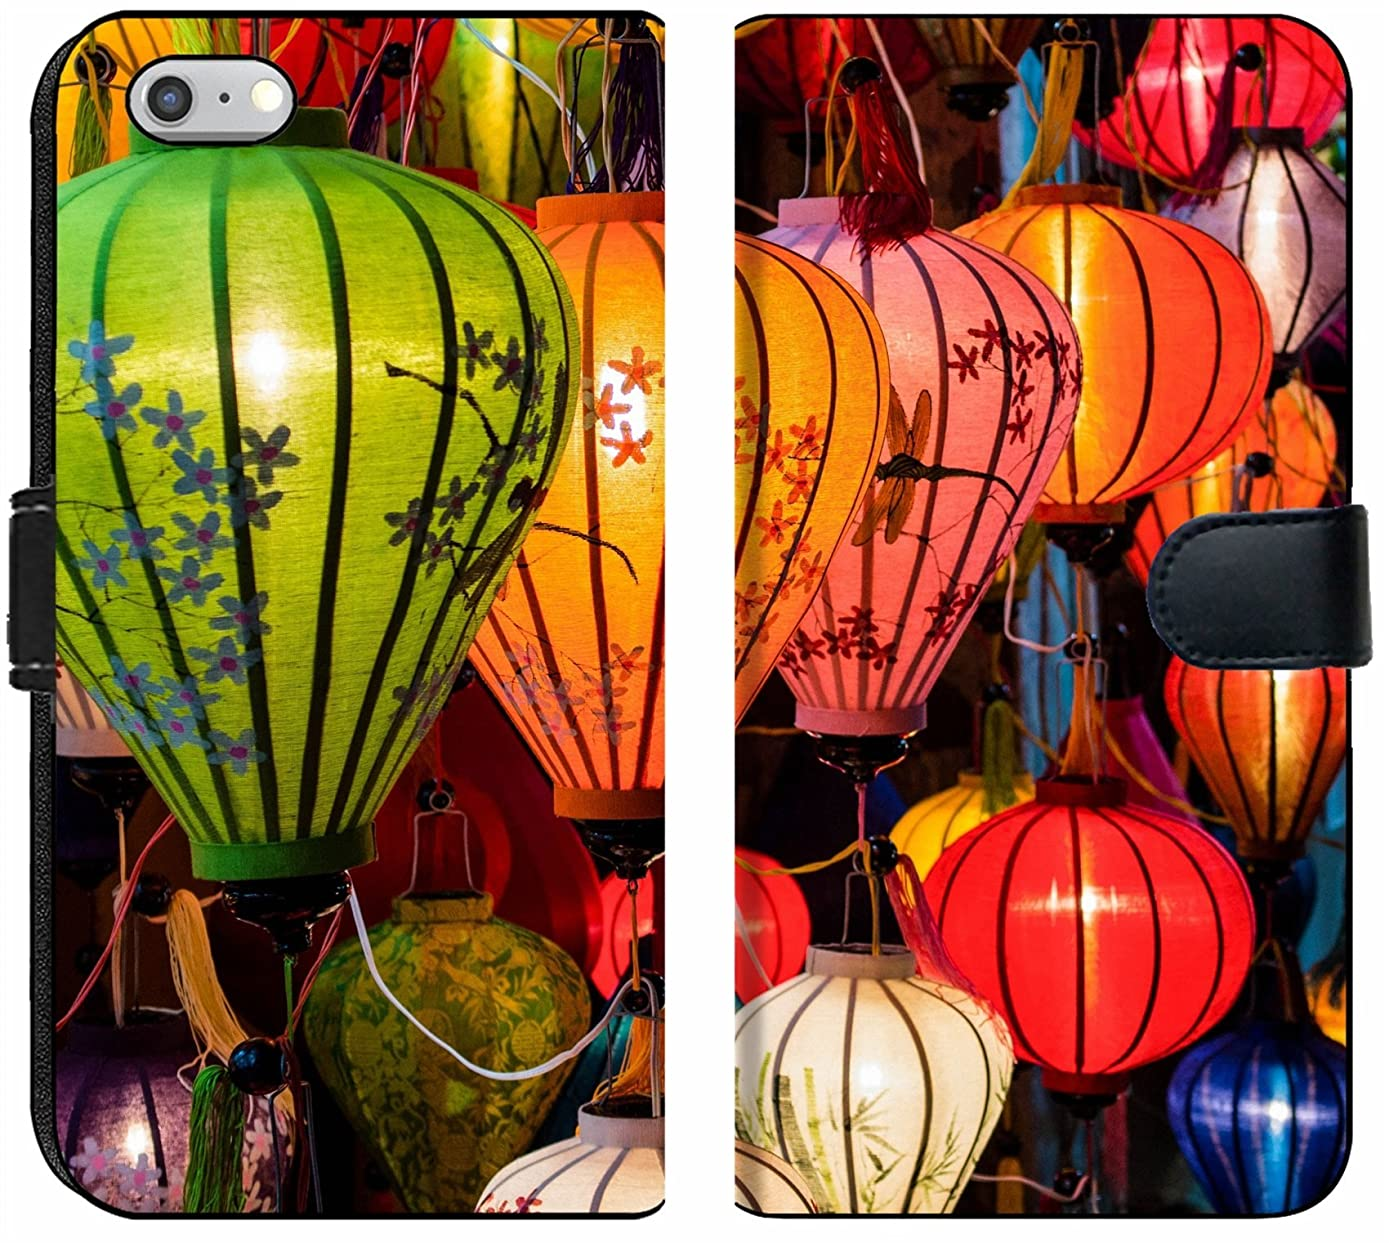 Apple iPhone 6 Plus and iPhone 6s Plus Flip Fabric Wallet Case Image ID: 31089698 Traditional Lamps in Old Town Hoi an Central Vietnam